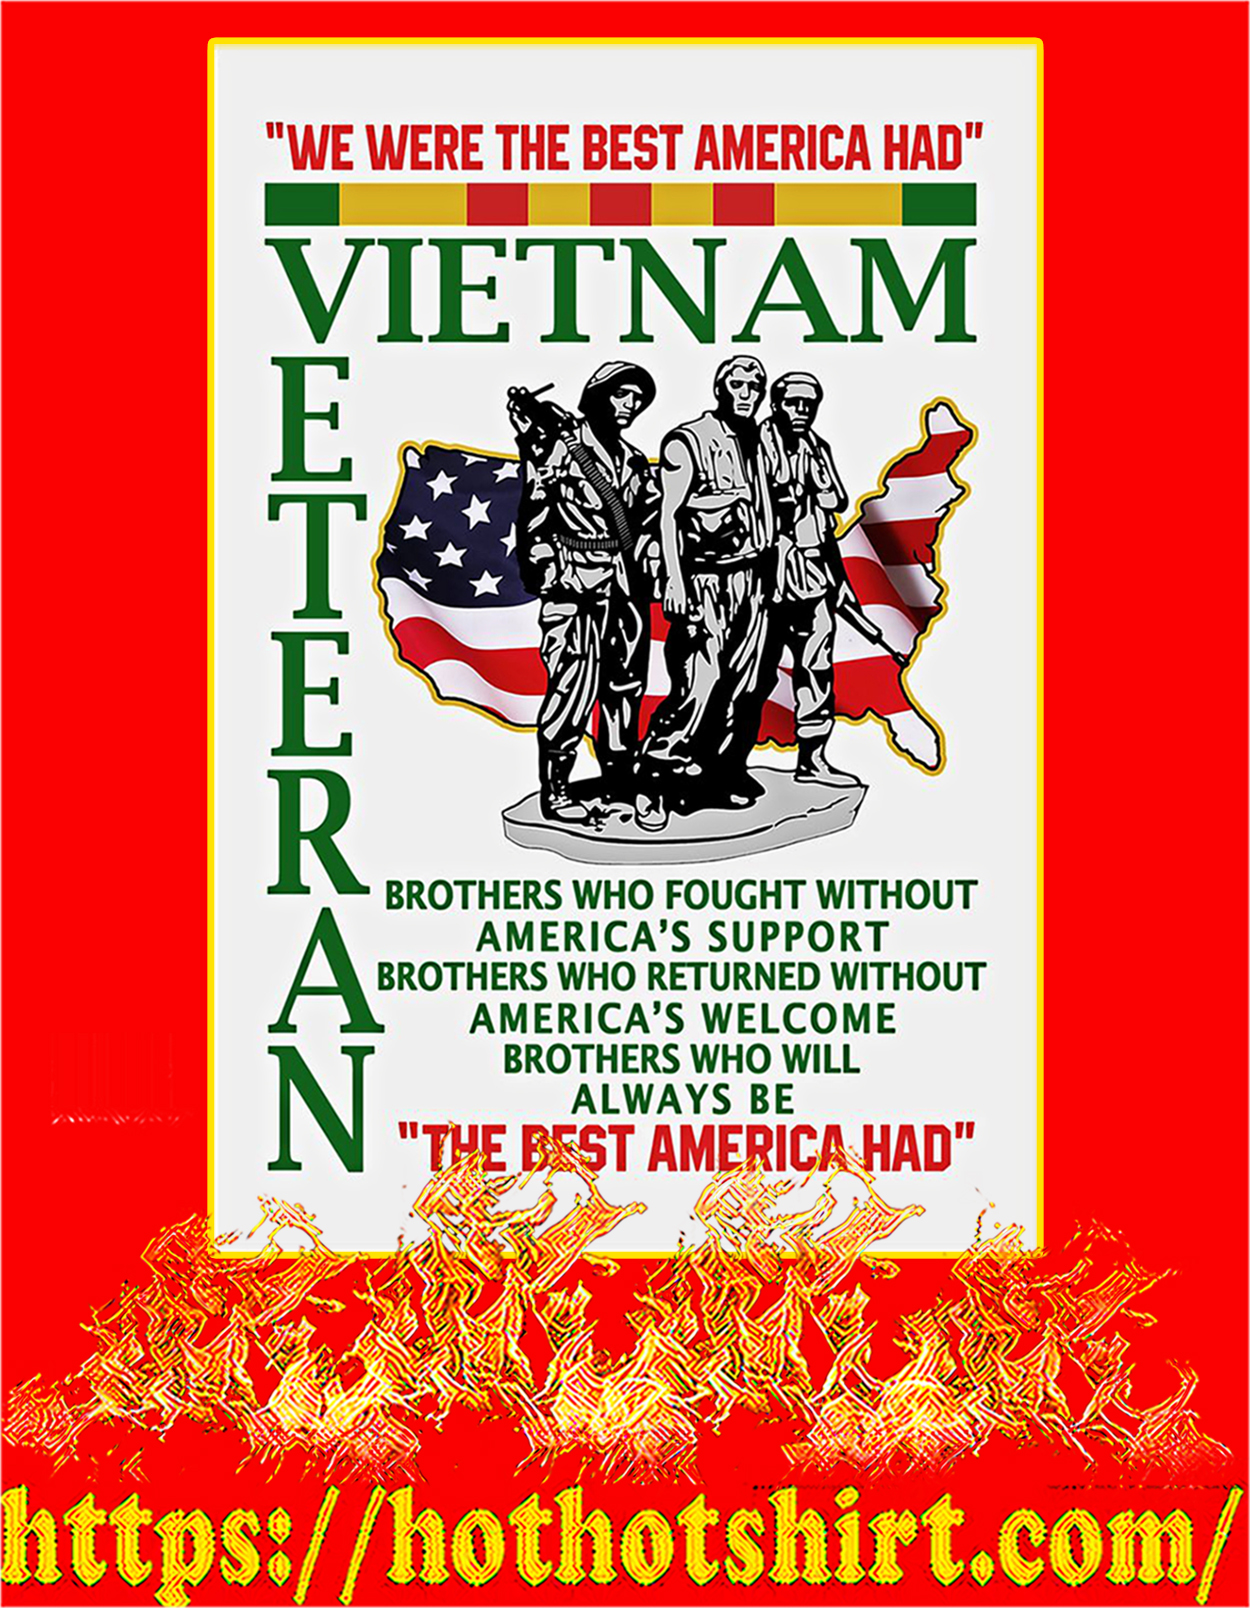 We were the best american had poster - A3